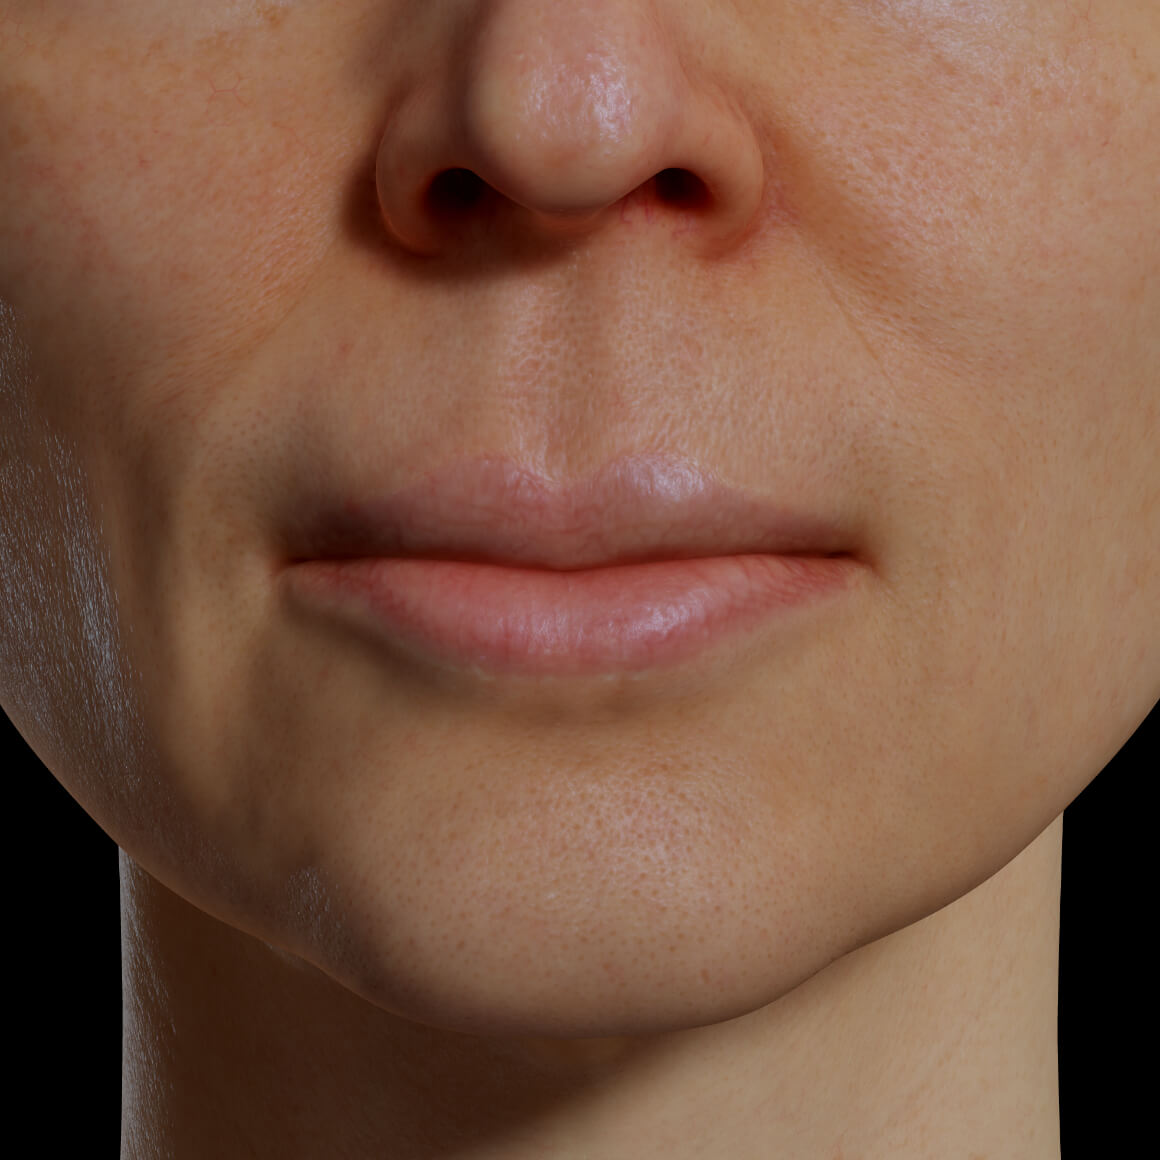 Female patient at Clinique Chloé facing front showing hydrated lips after a mesotherapy treatment